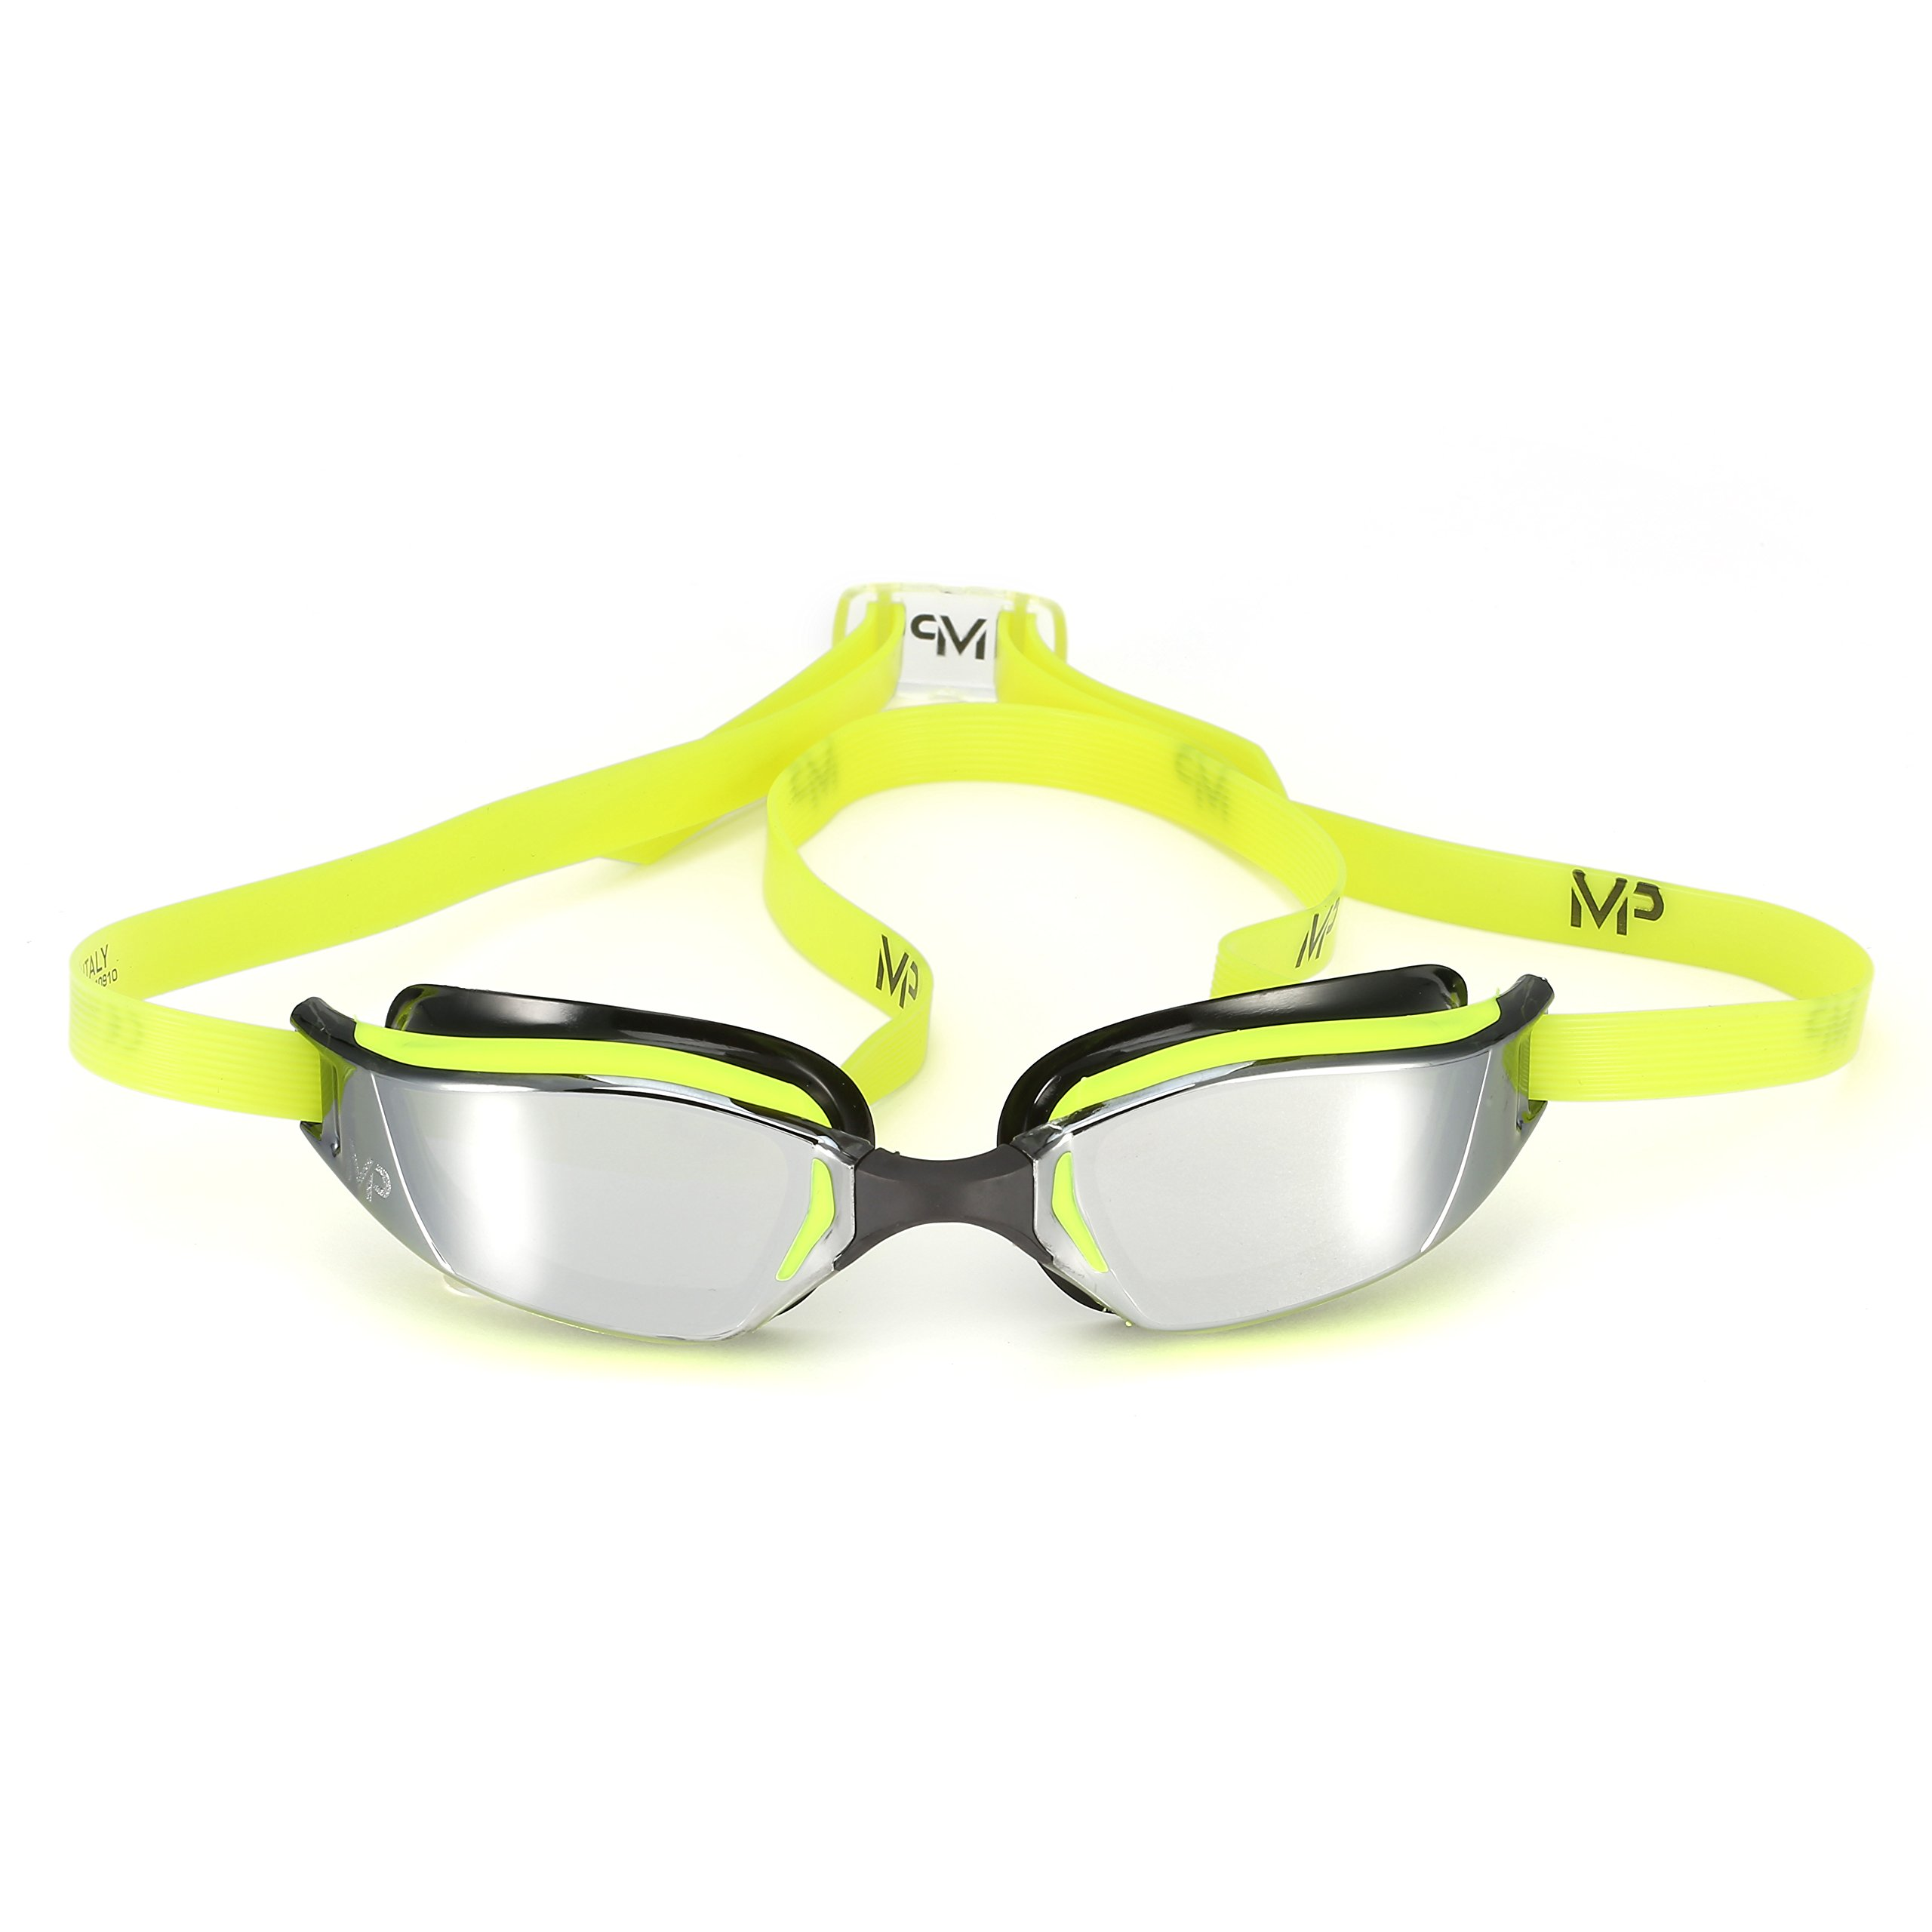 MP Michael Phelps XCEED Swimming Goggles, Mirrored Lens, Yellow/Black Frame by MP Michael Phelps (Image #3)